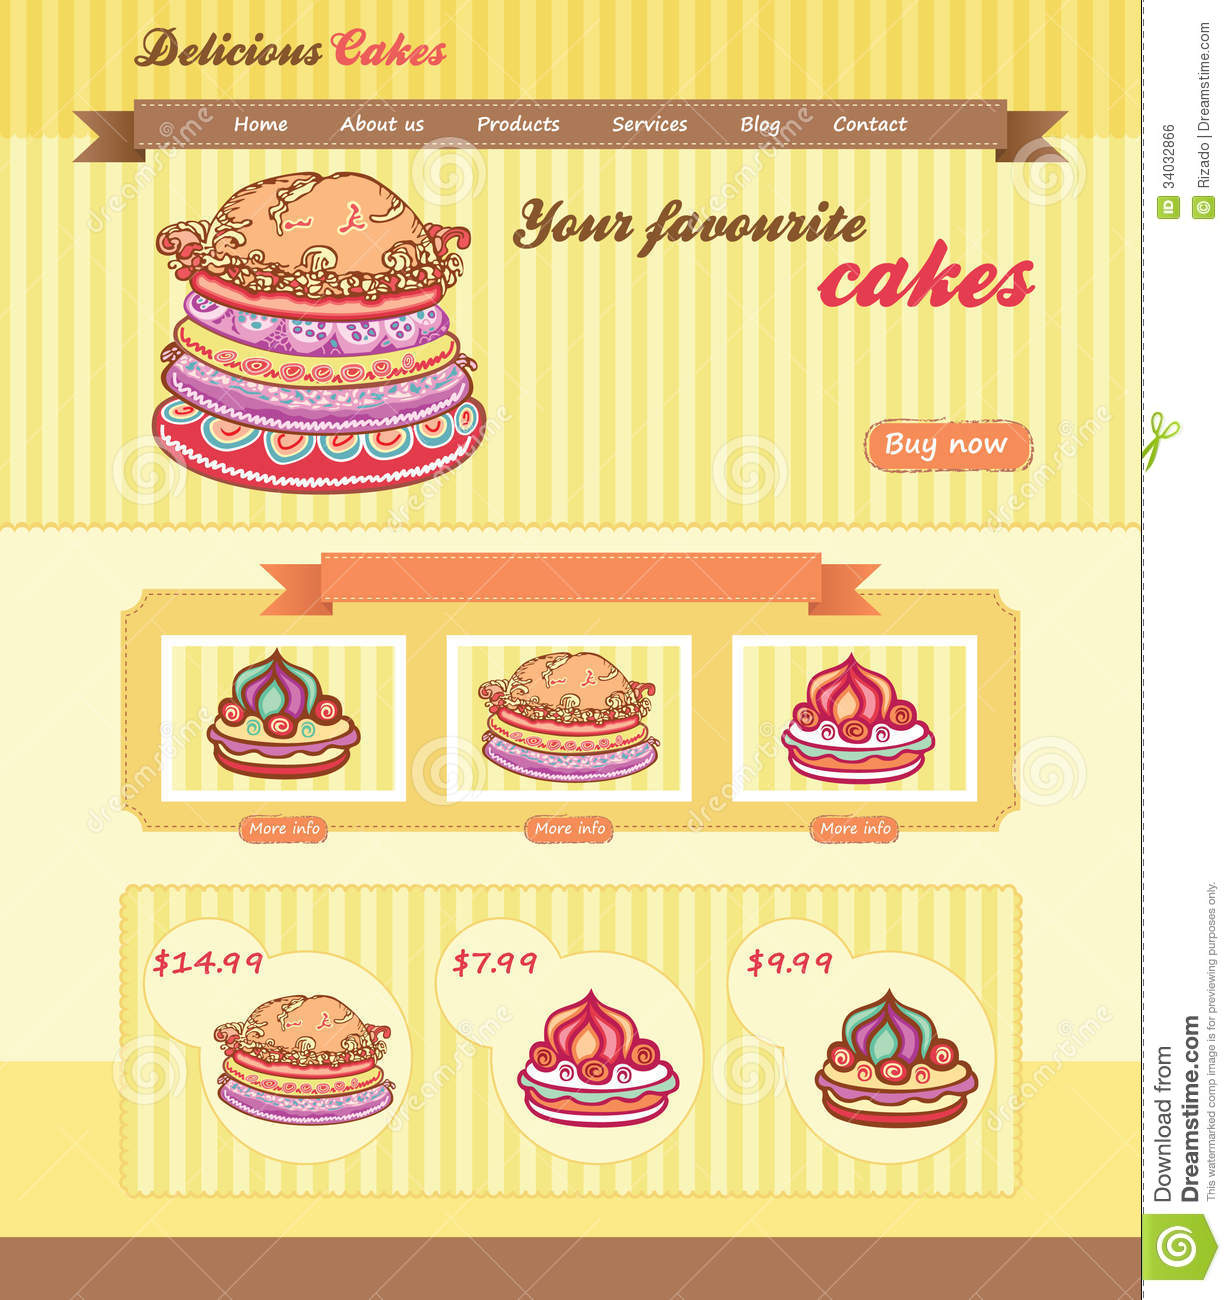 Cake Designs Website : Cake Shop Template Royalty Free Stock Image - Image: 34032866